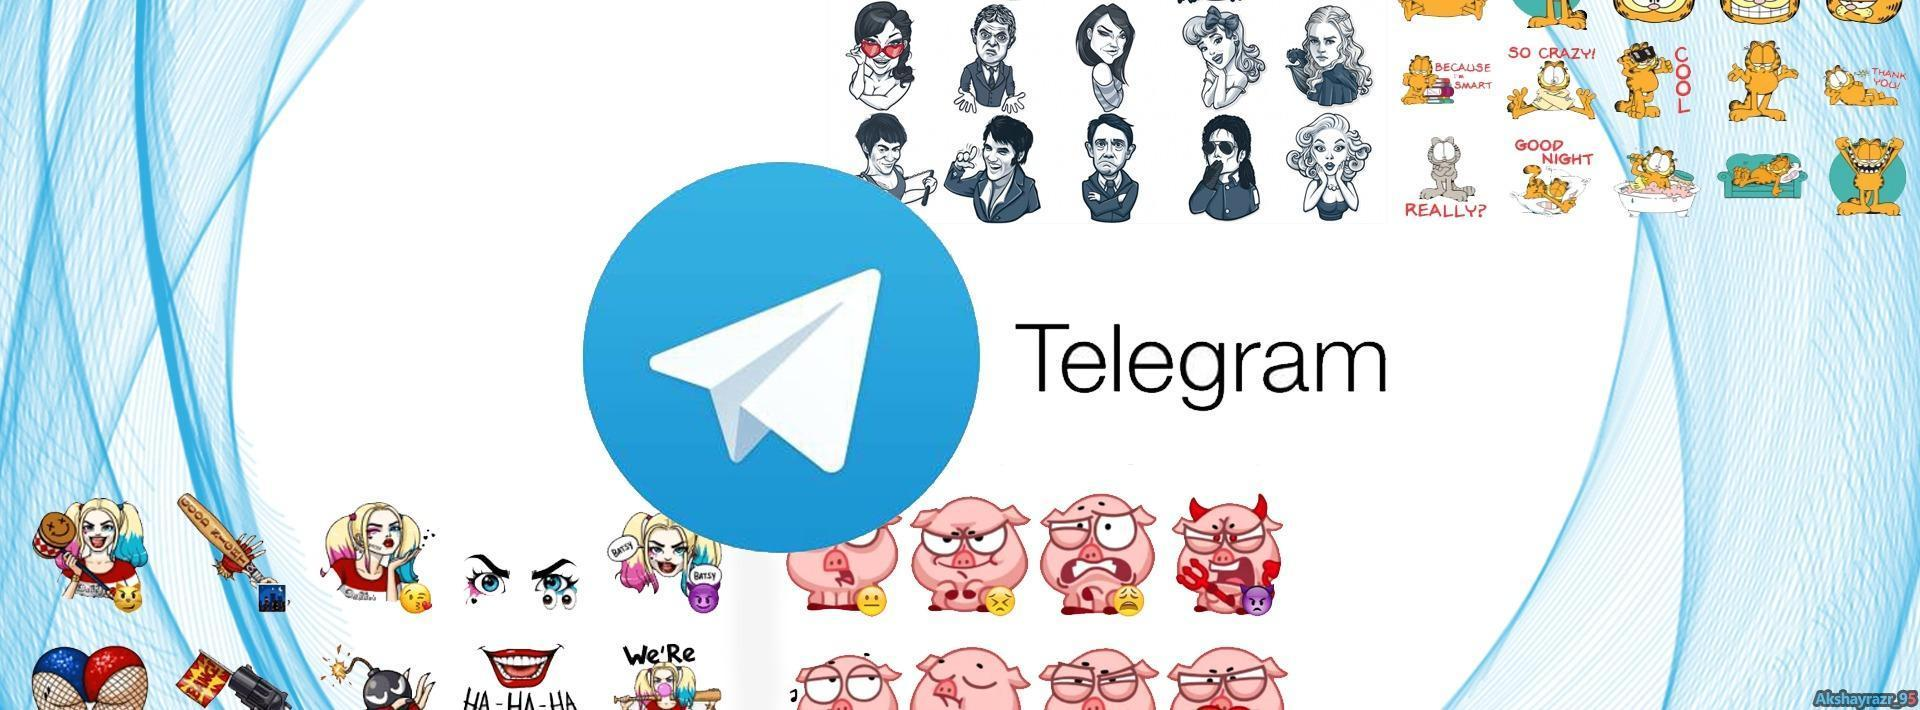 Telegram New sticker update download